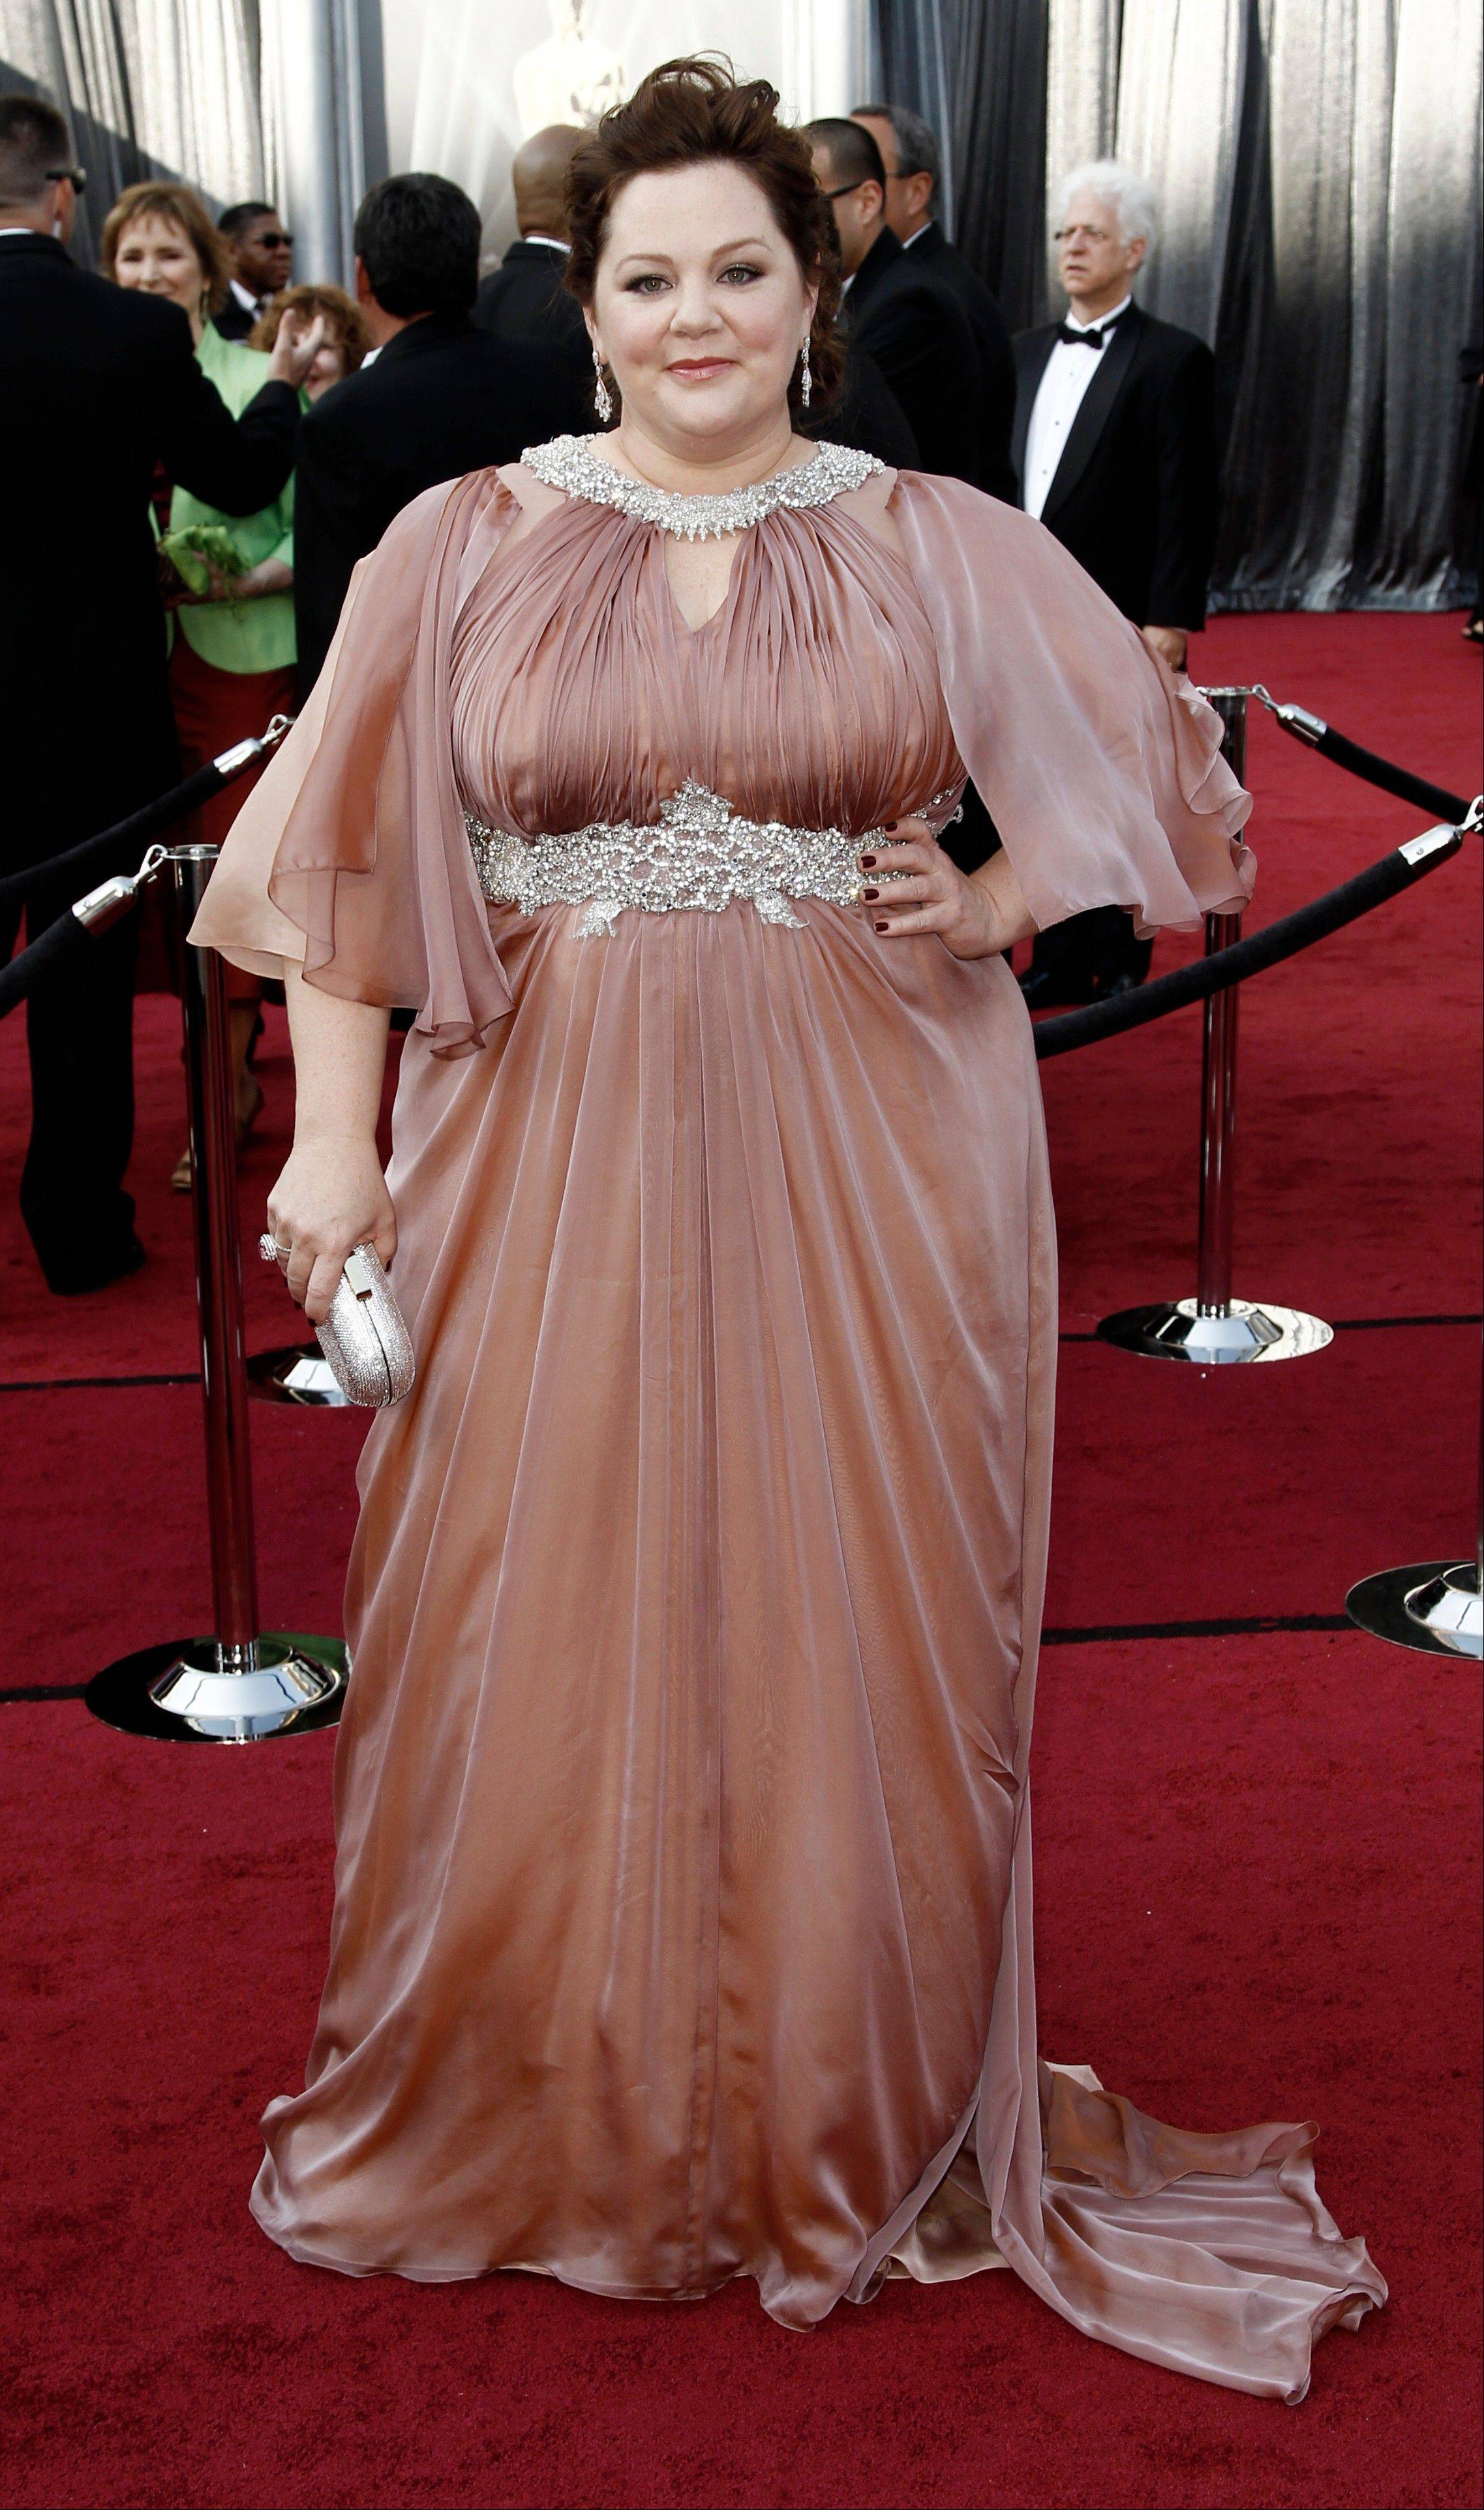 Oscar nominee and Plainfield native Melissa McCarthy wore Marina Rinaldi to the 84th Academy Awards on Sunday.